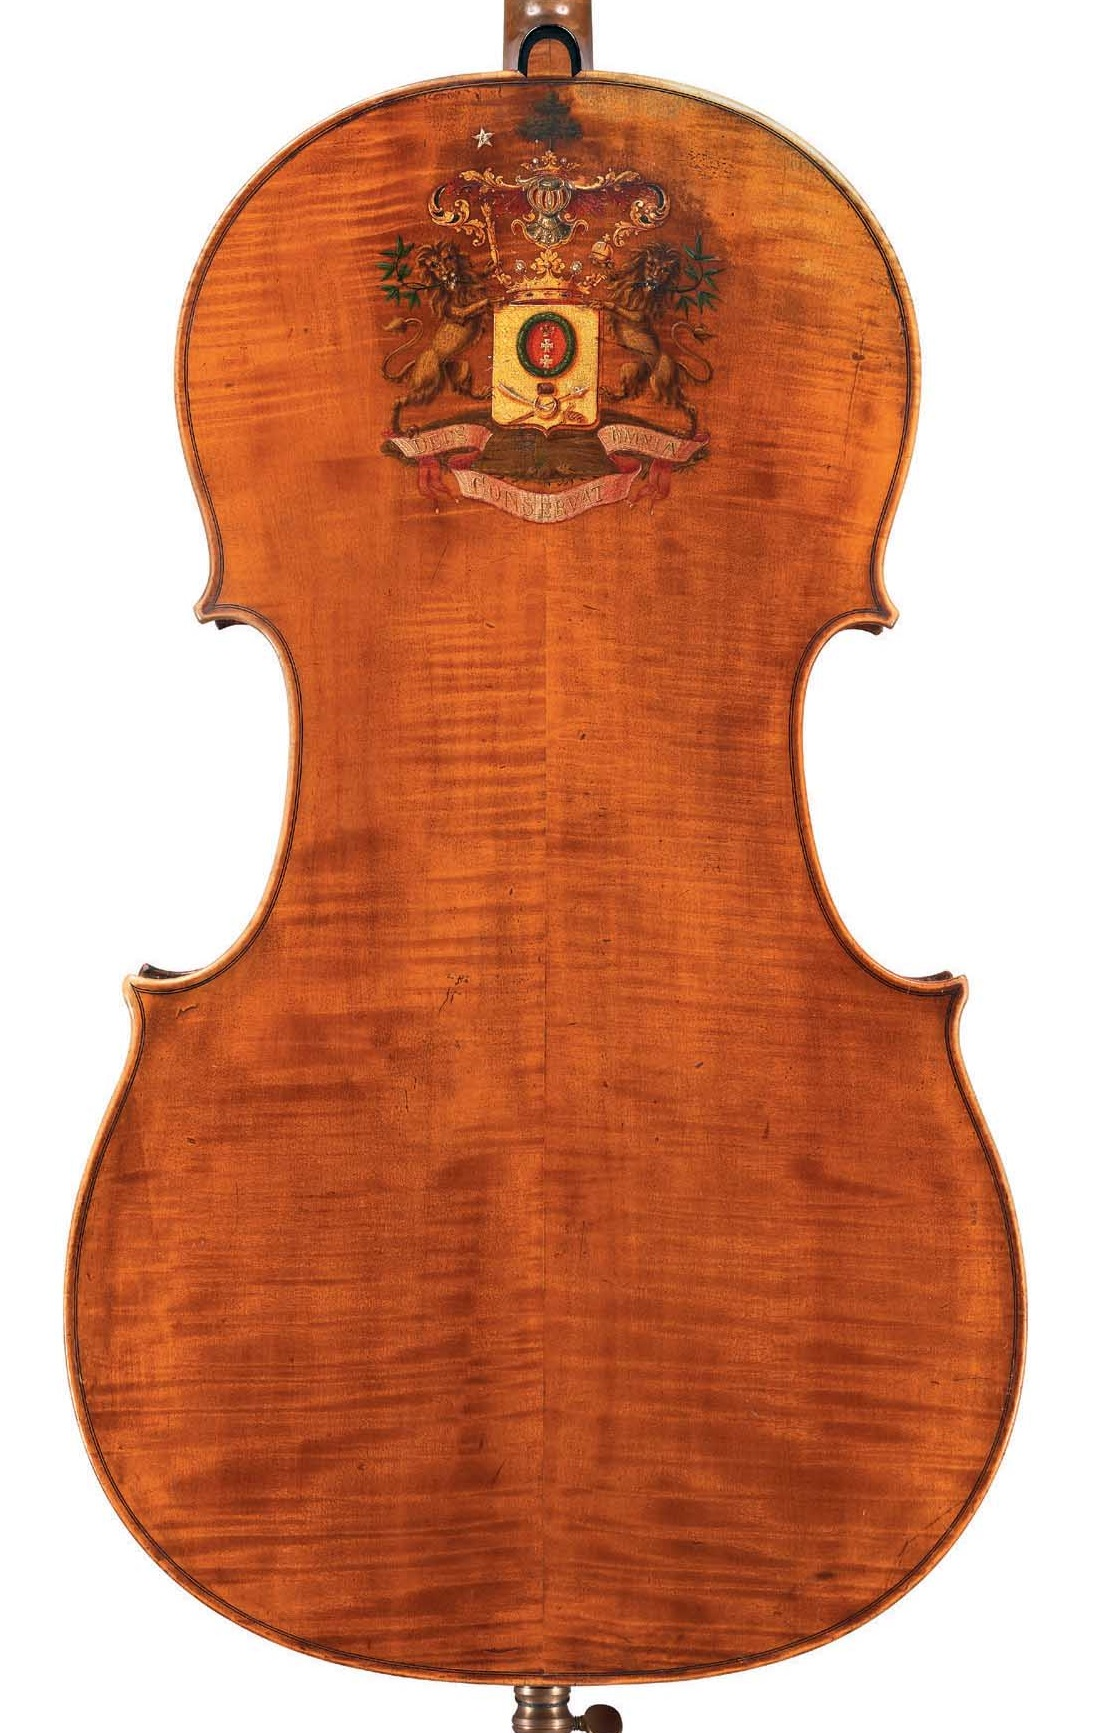 Back of cello by JB Vuillaume, ex-Sheremetev, dated 1865, exhibited by Ingles & Hayday at Sotheby's in 2012